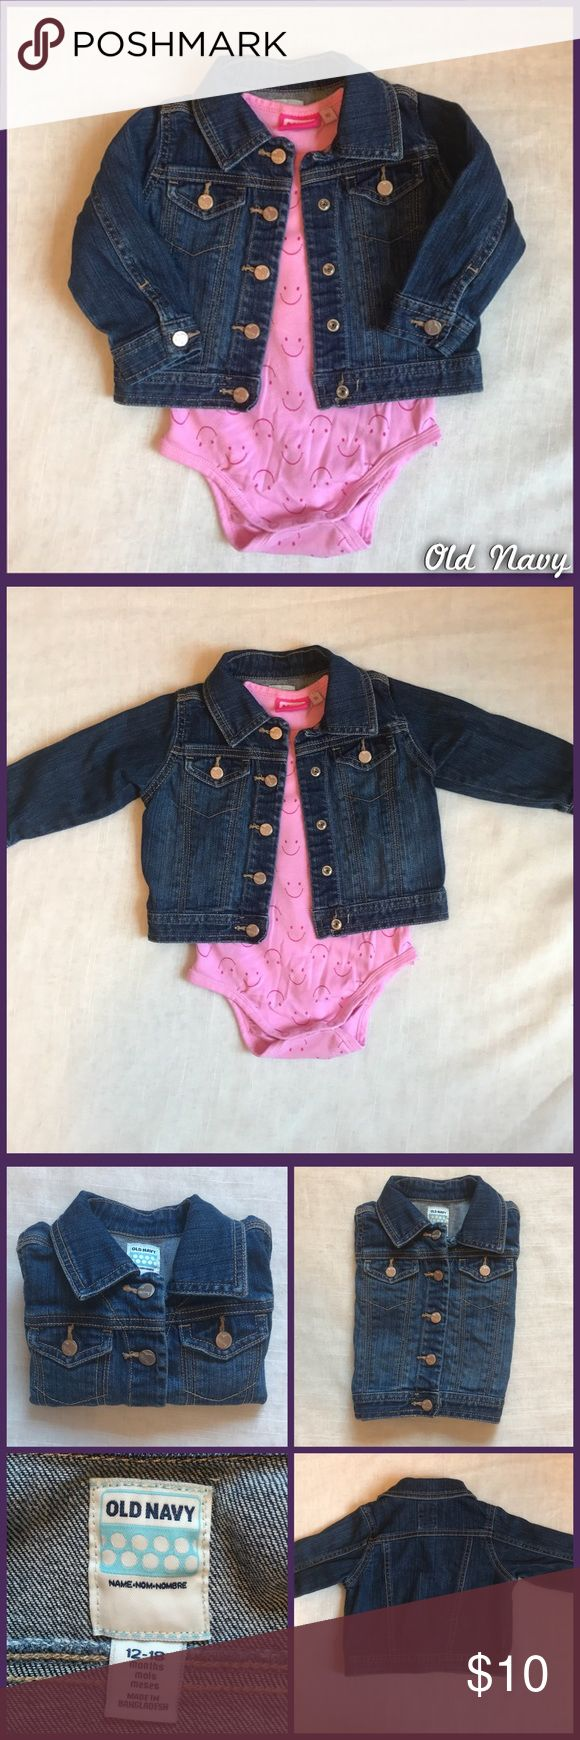 Old Navy Jean Jacket Long sleeve, snap button, jean jacket from Old Navy, size 12 to 18 months, in great pre-lived condition. Old Navy Jackets & Coats Jean Jackets